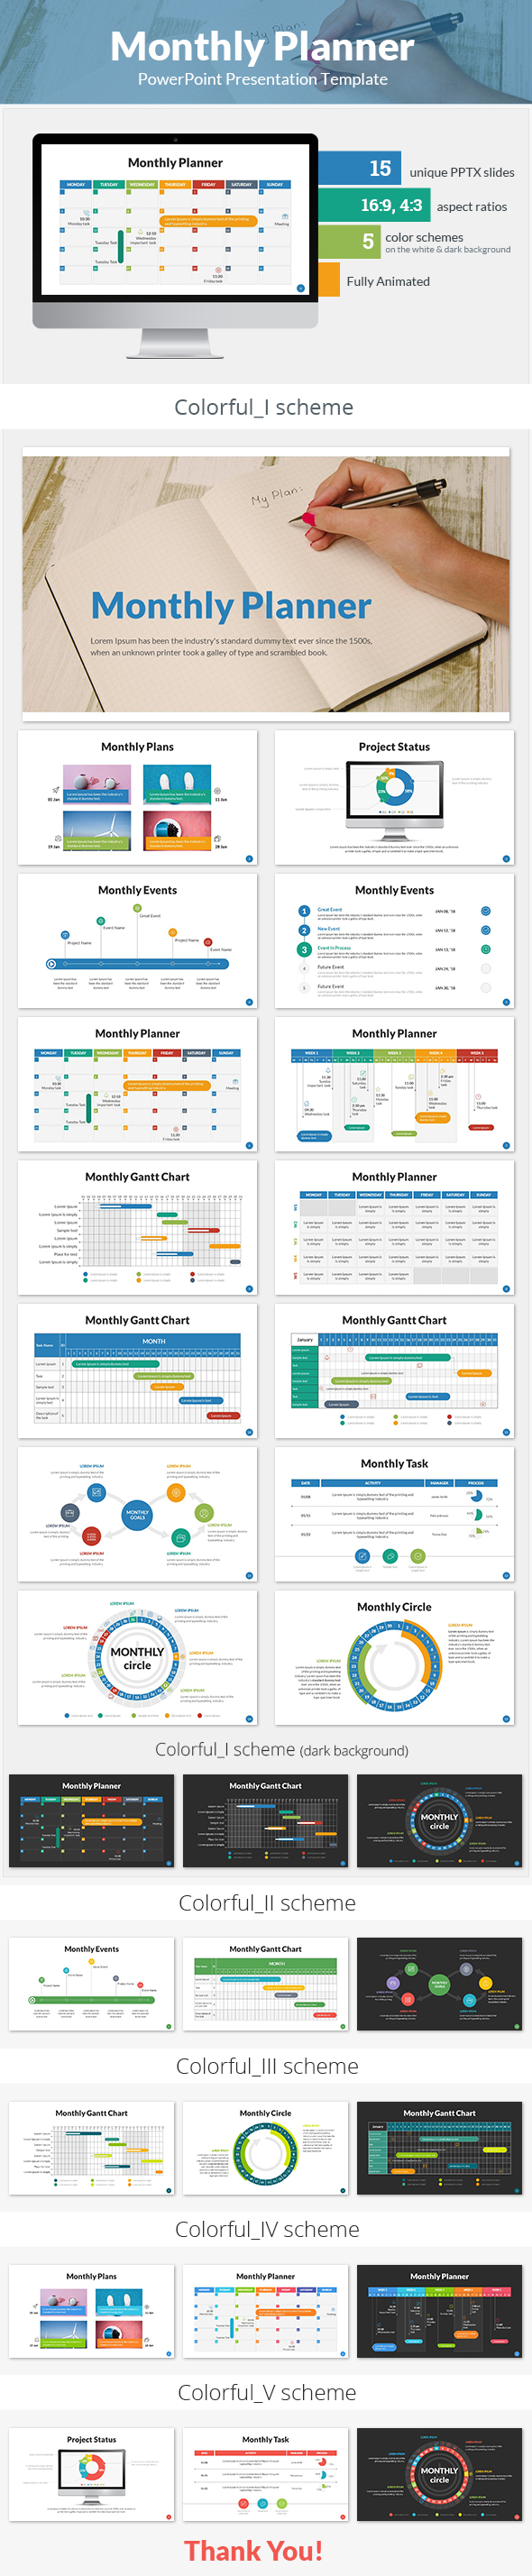 monthly planner powerpoint presentation templatesananik, Presentation templates